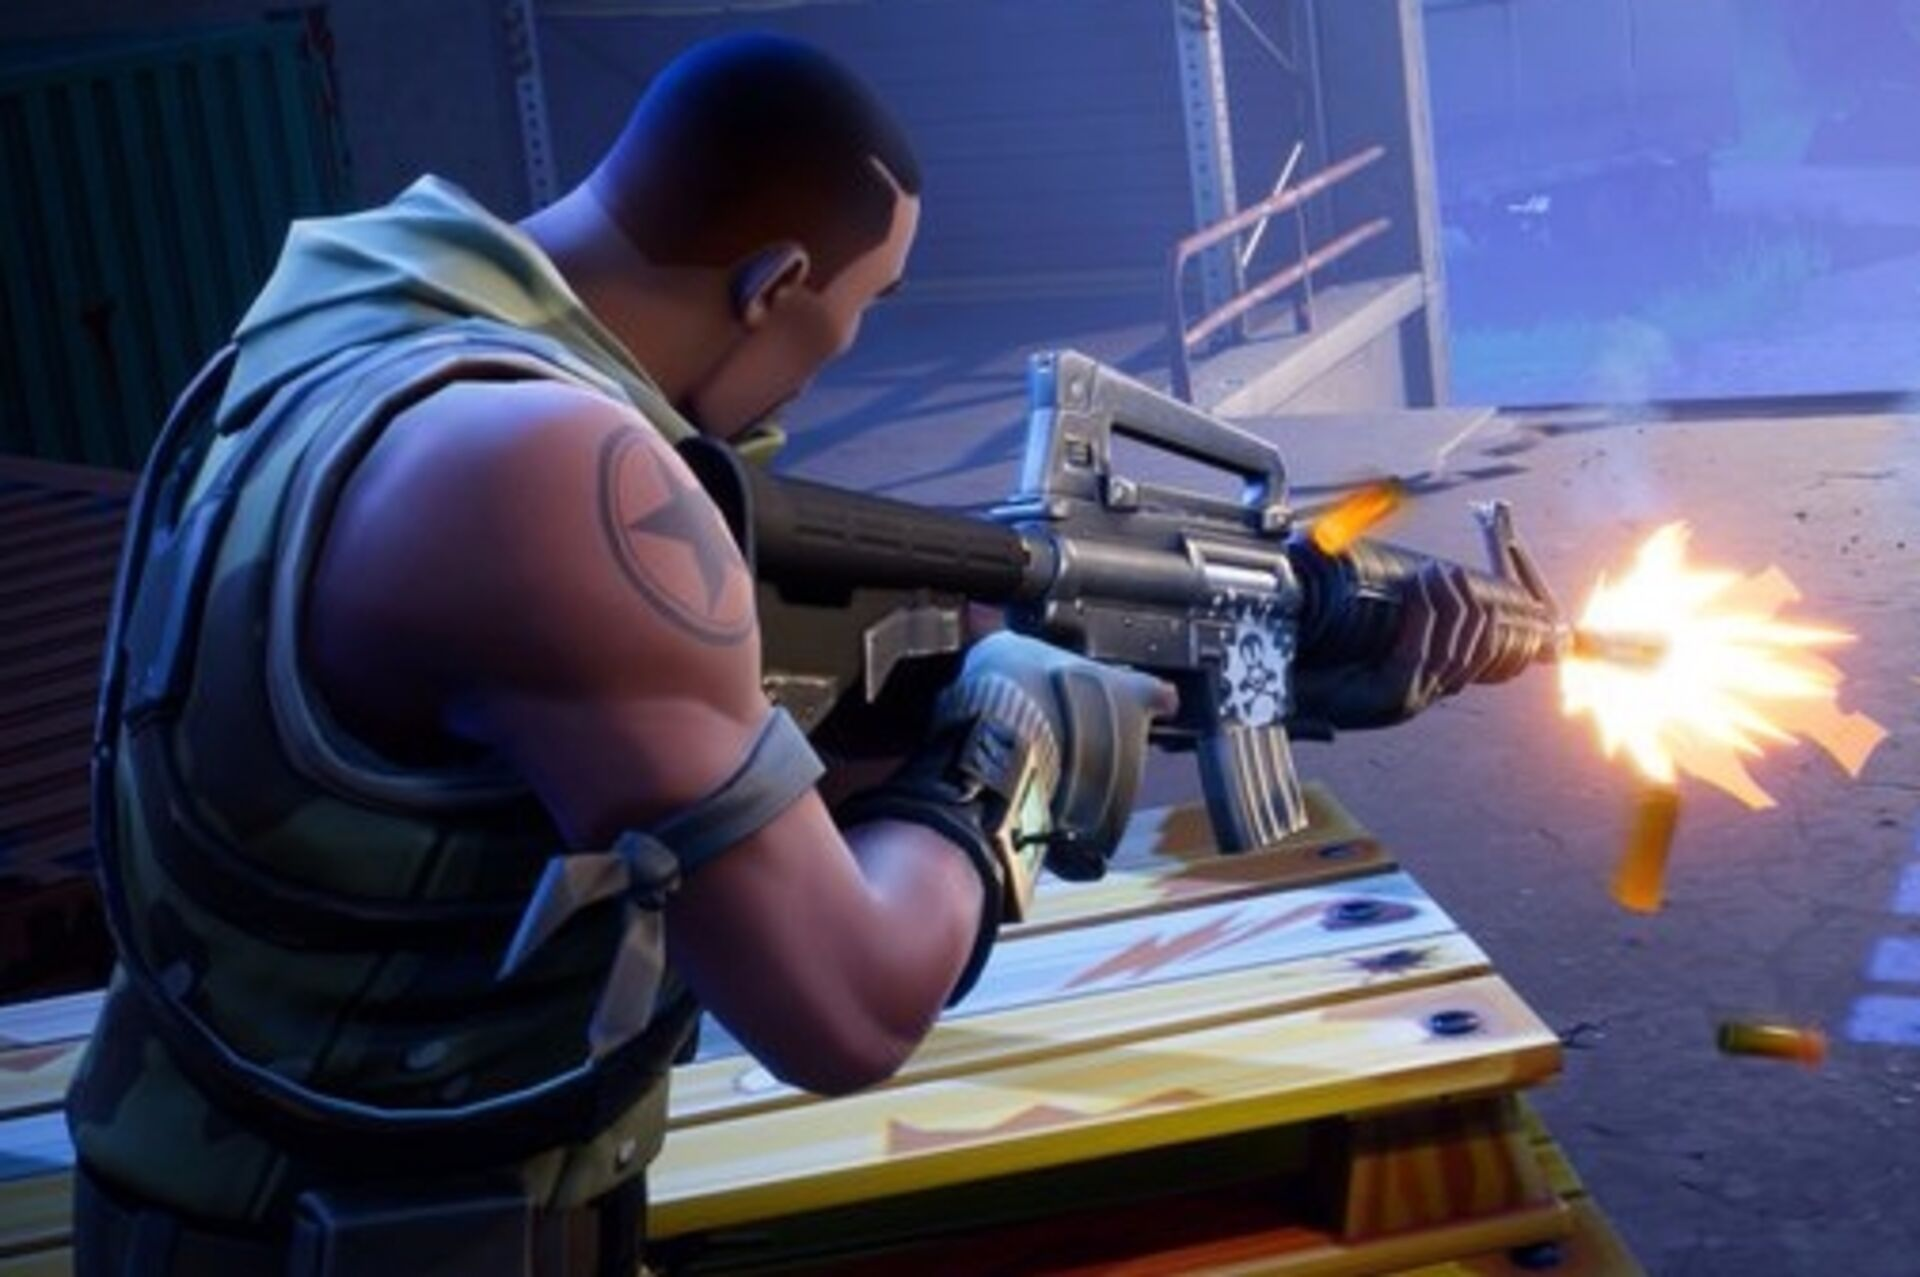 Mother defends 14-year-old son sued by Epic over Fortnite cheat